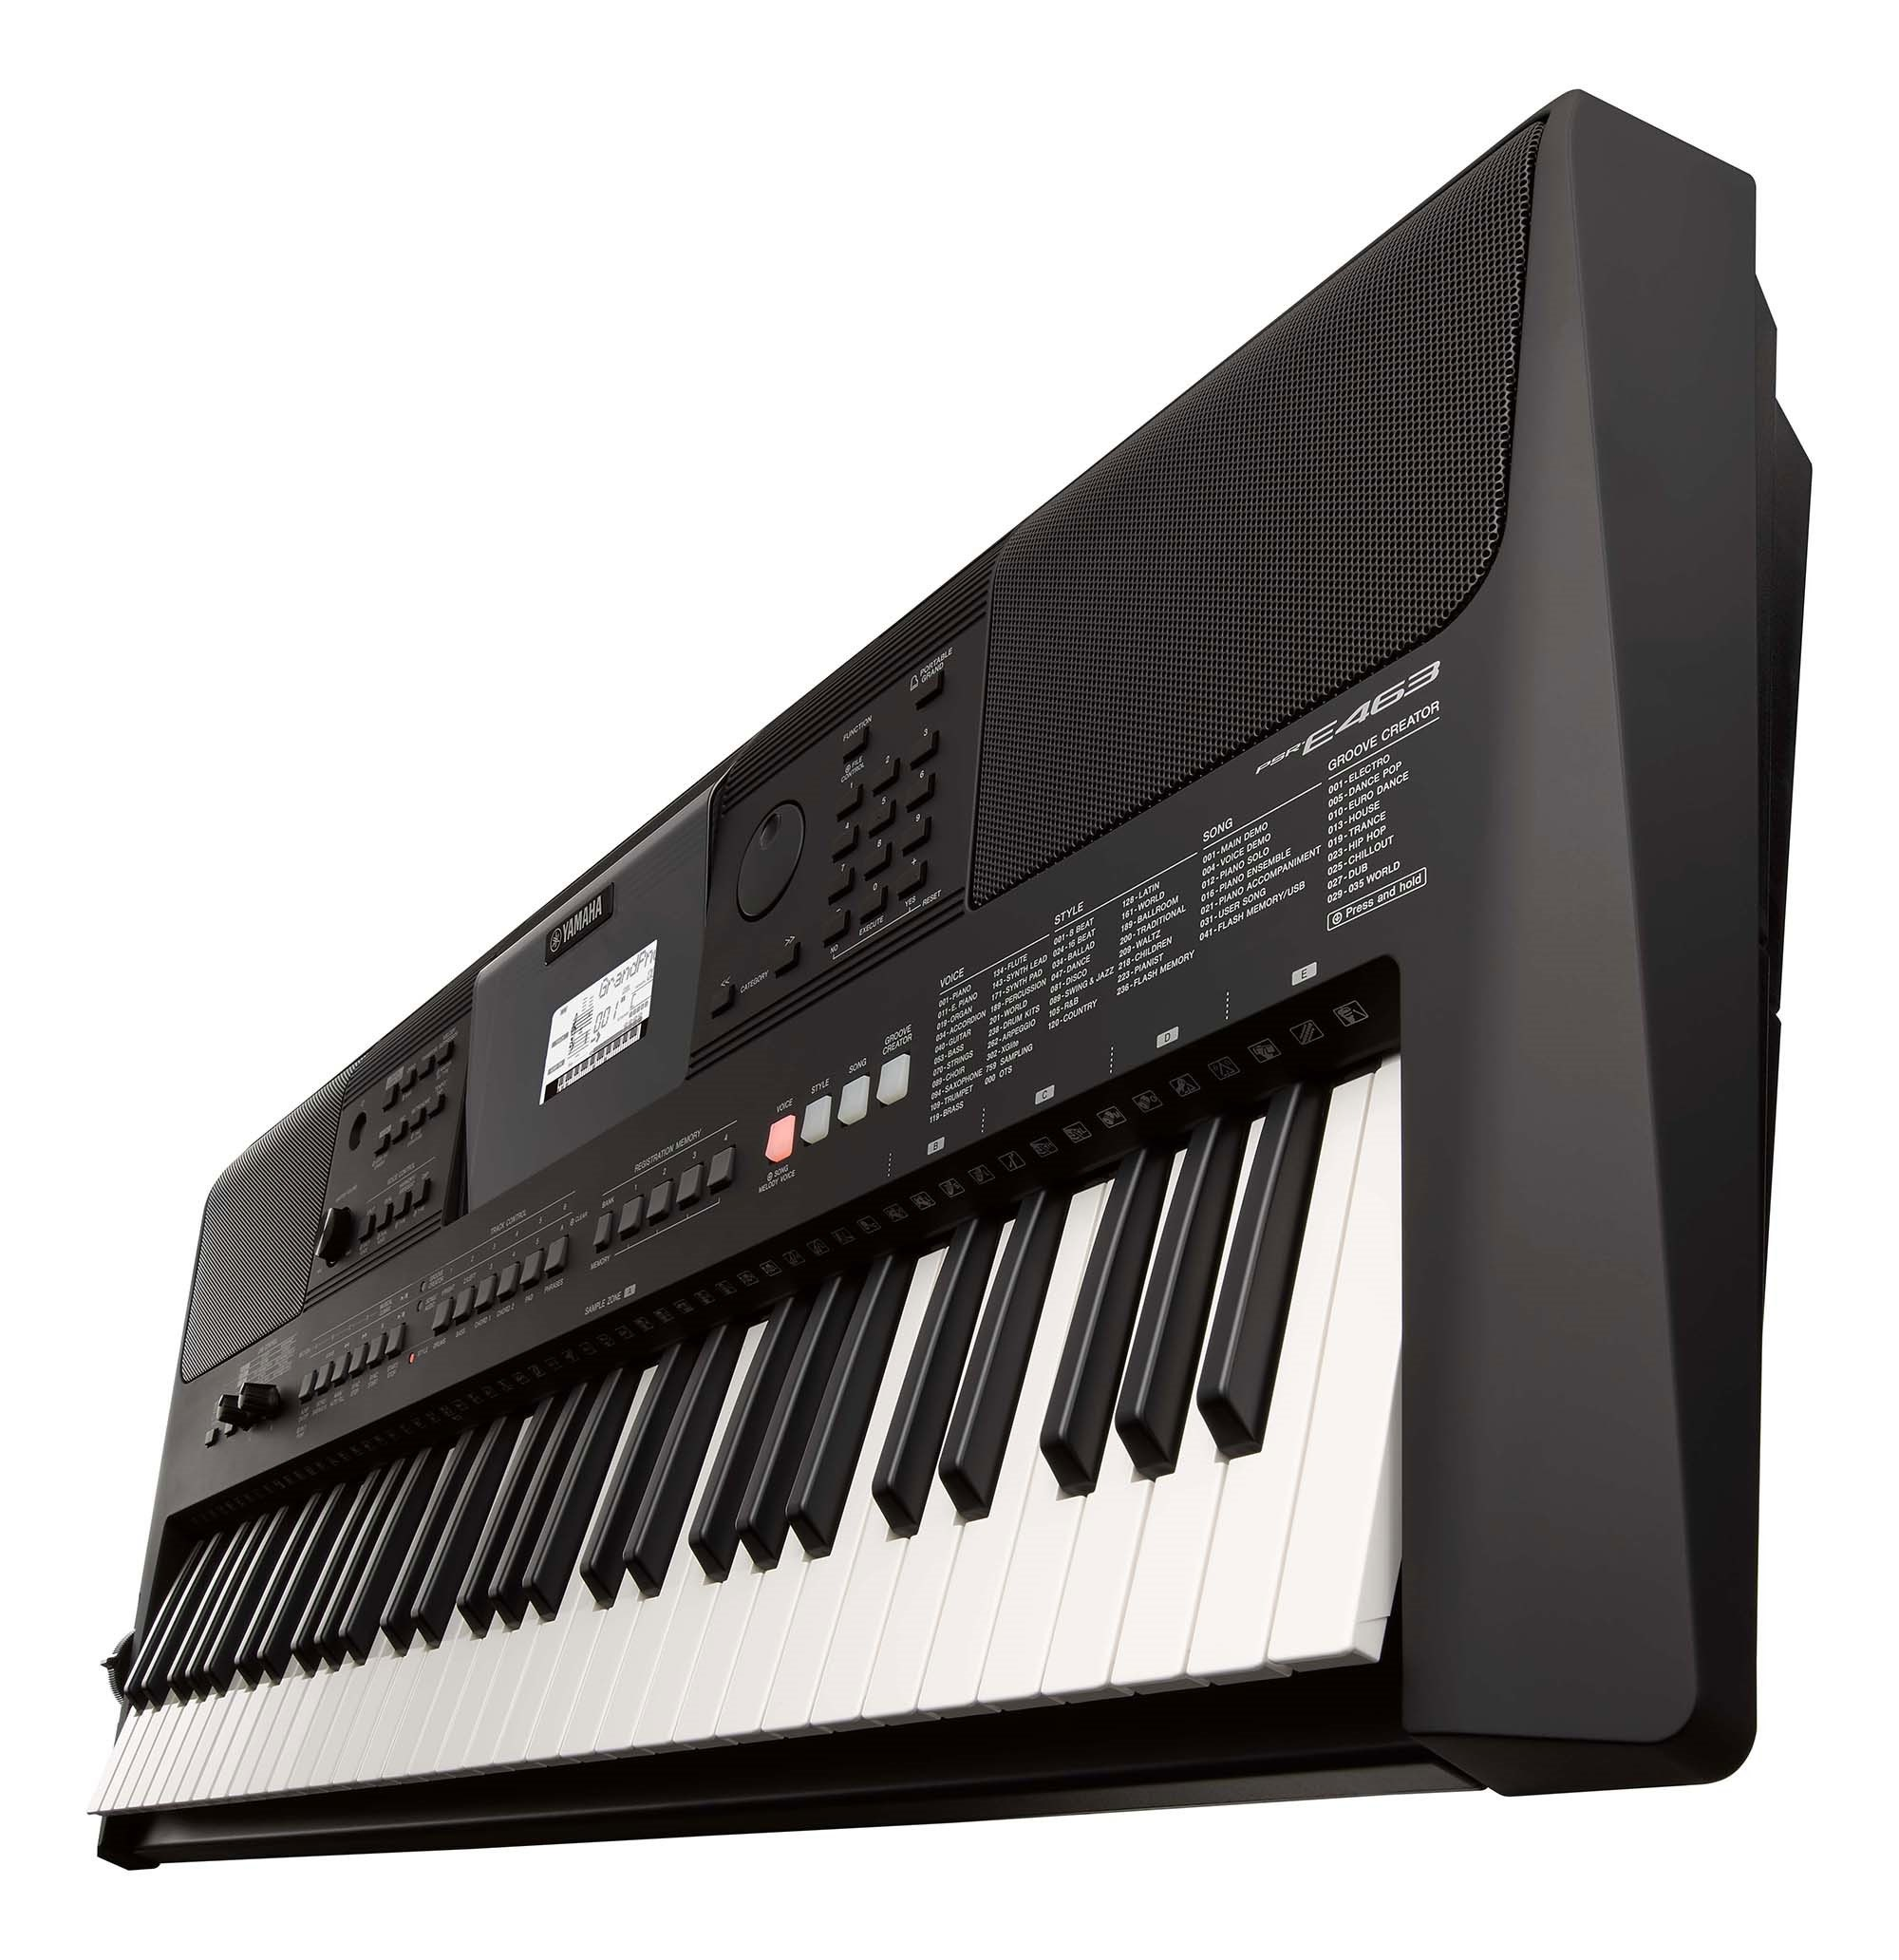 PSR-E463 - Downloads - Portable Keyboards - Keyboard